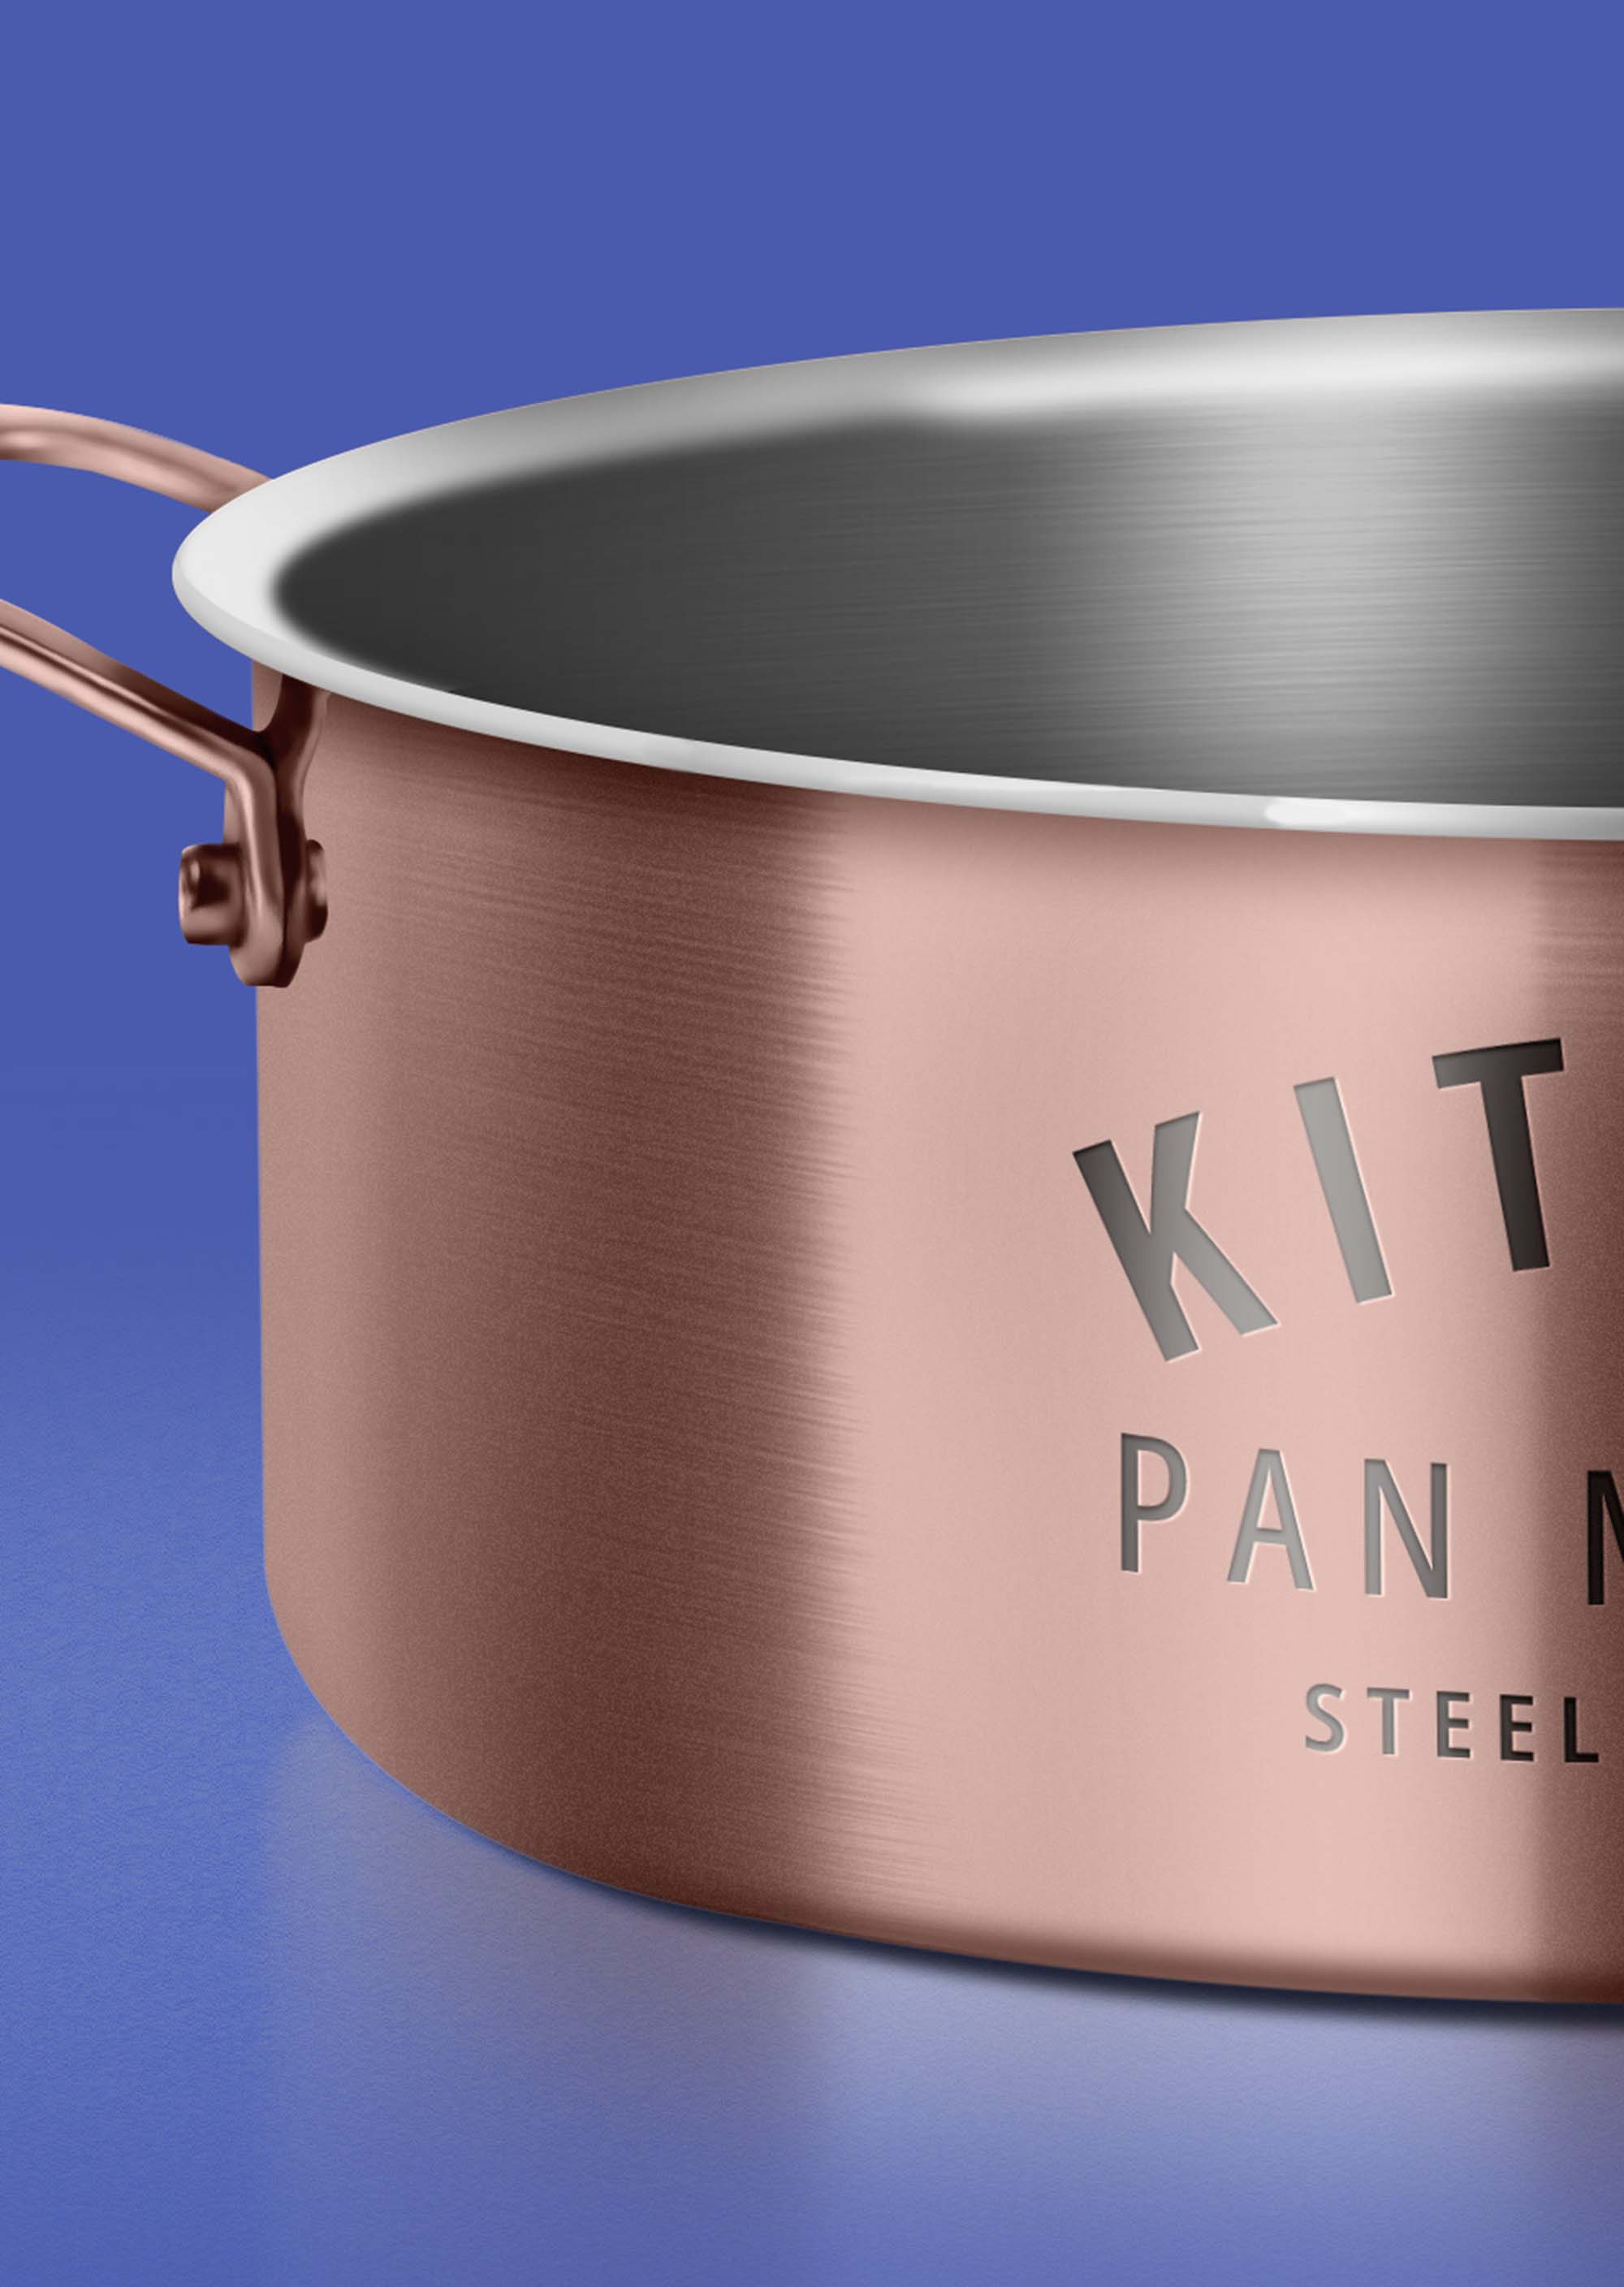 Cooking Pan Mockup